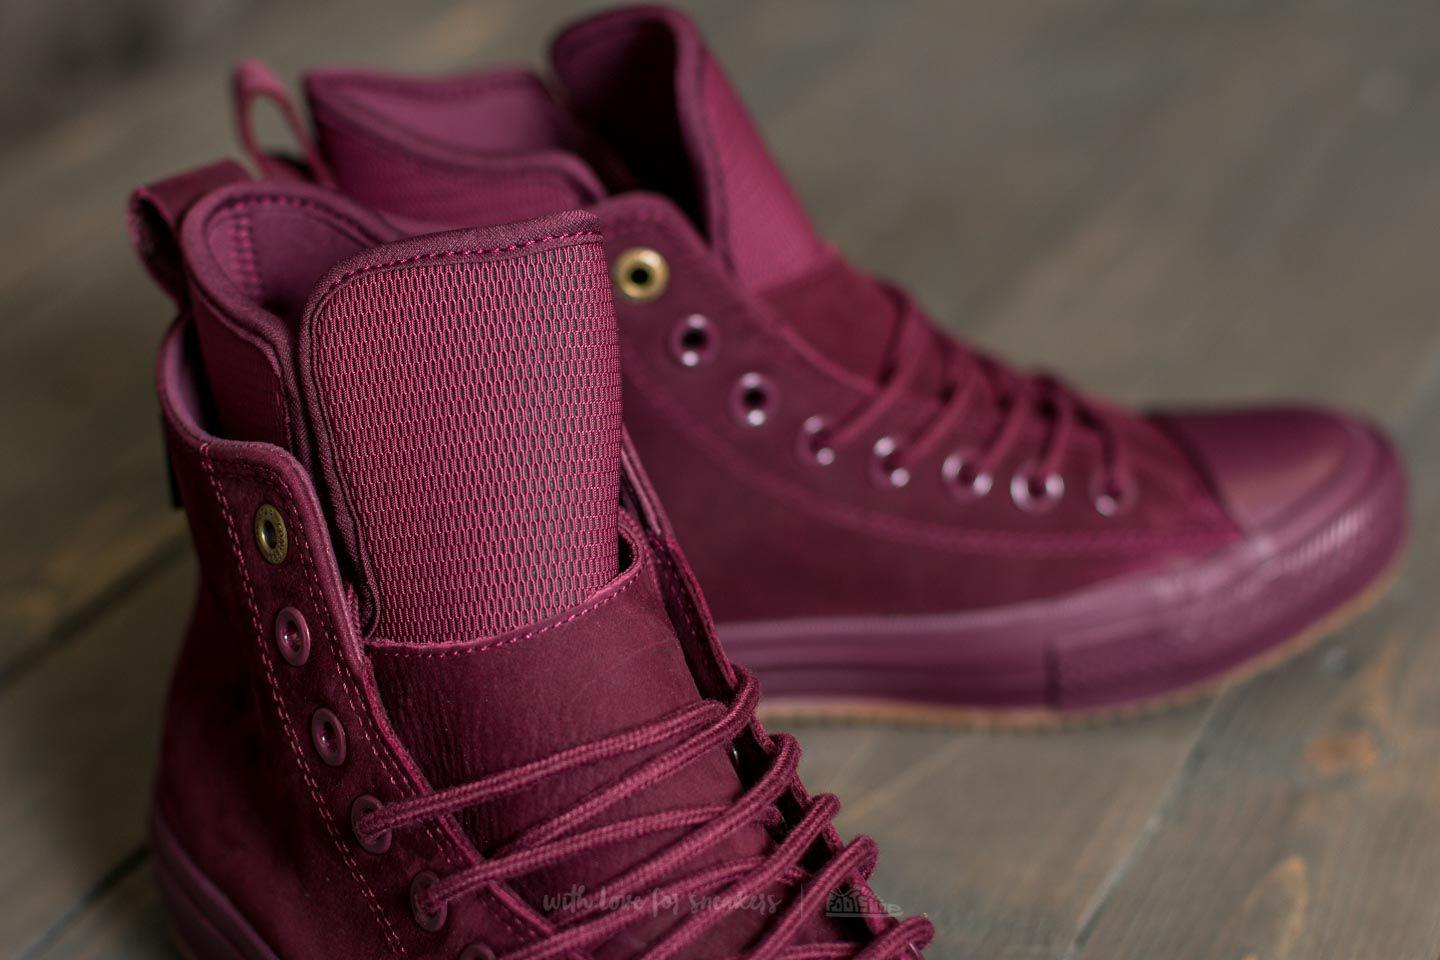 converse all star low leather dark sangria rose gold